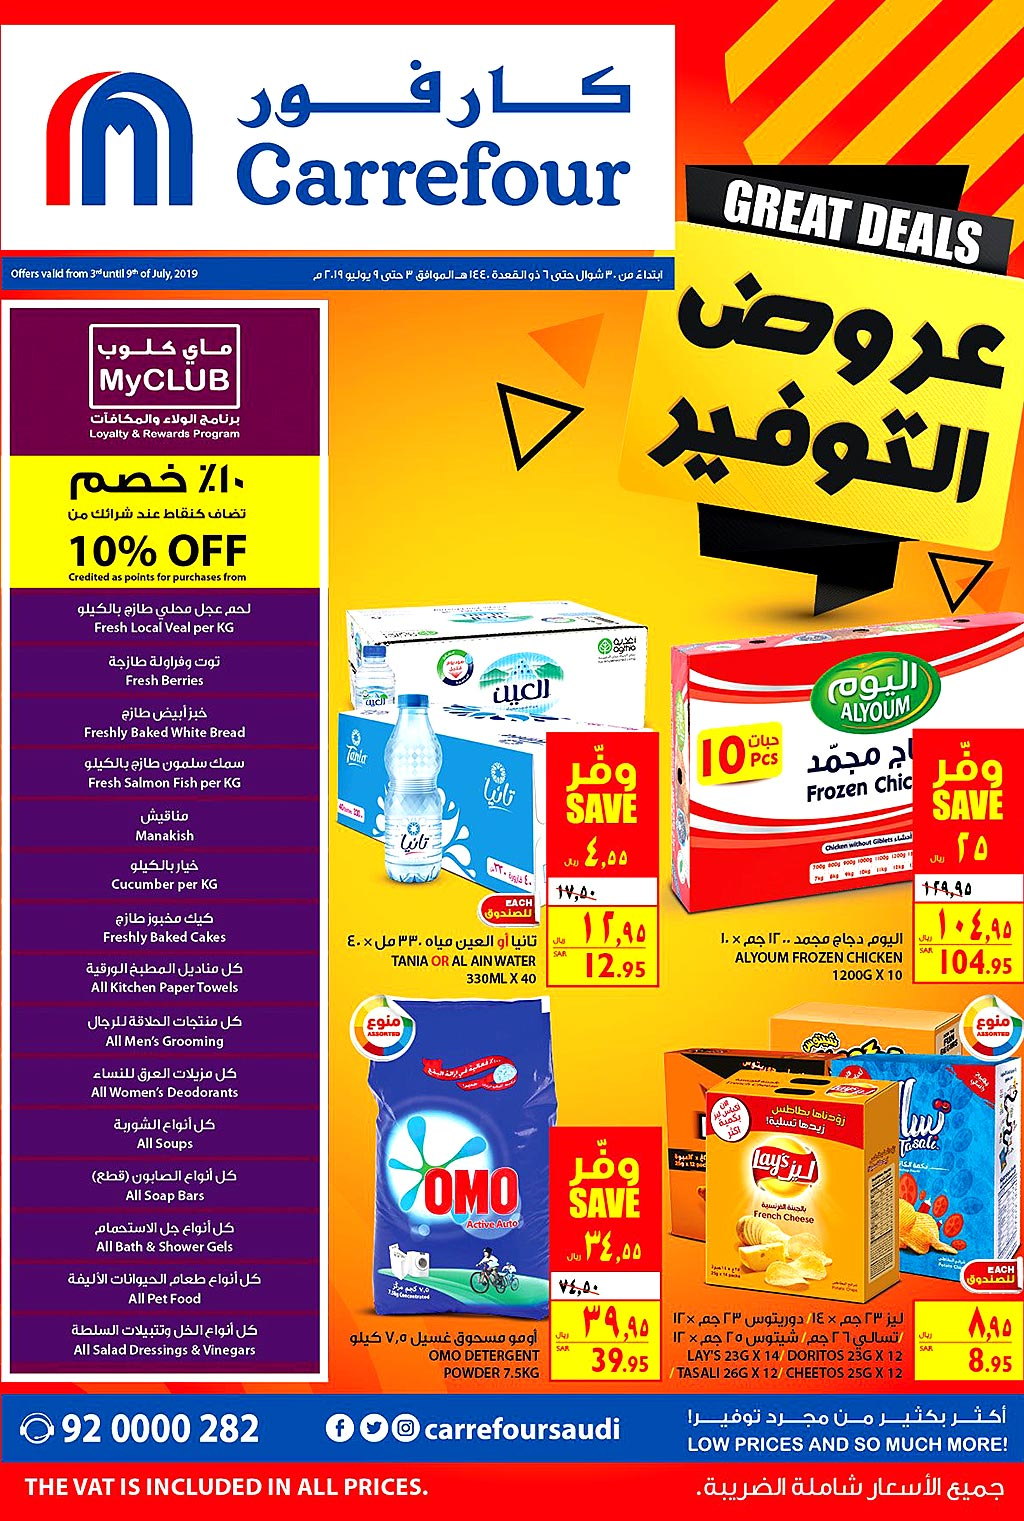 carrefour offers from 3july to 9july 2019 page number 1 عروض كارفور-السعودية من 3 يوليو حتى 9 يوليو 2019 صفحة رقم 1